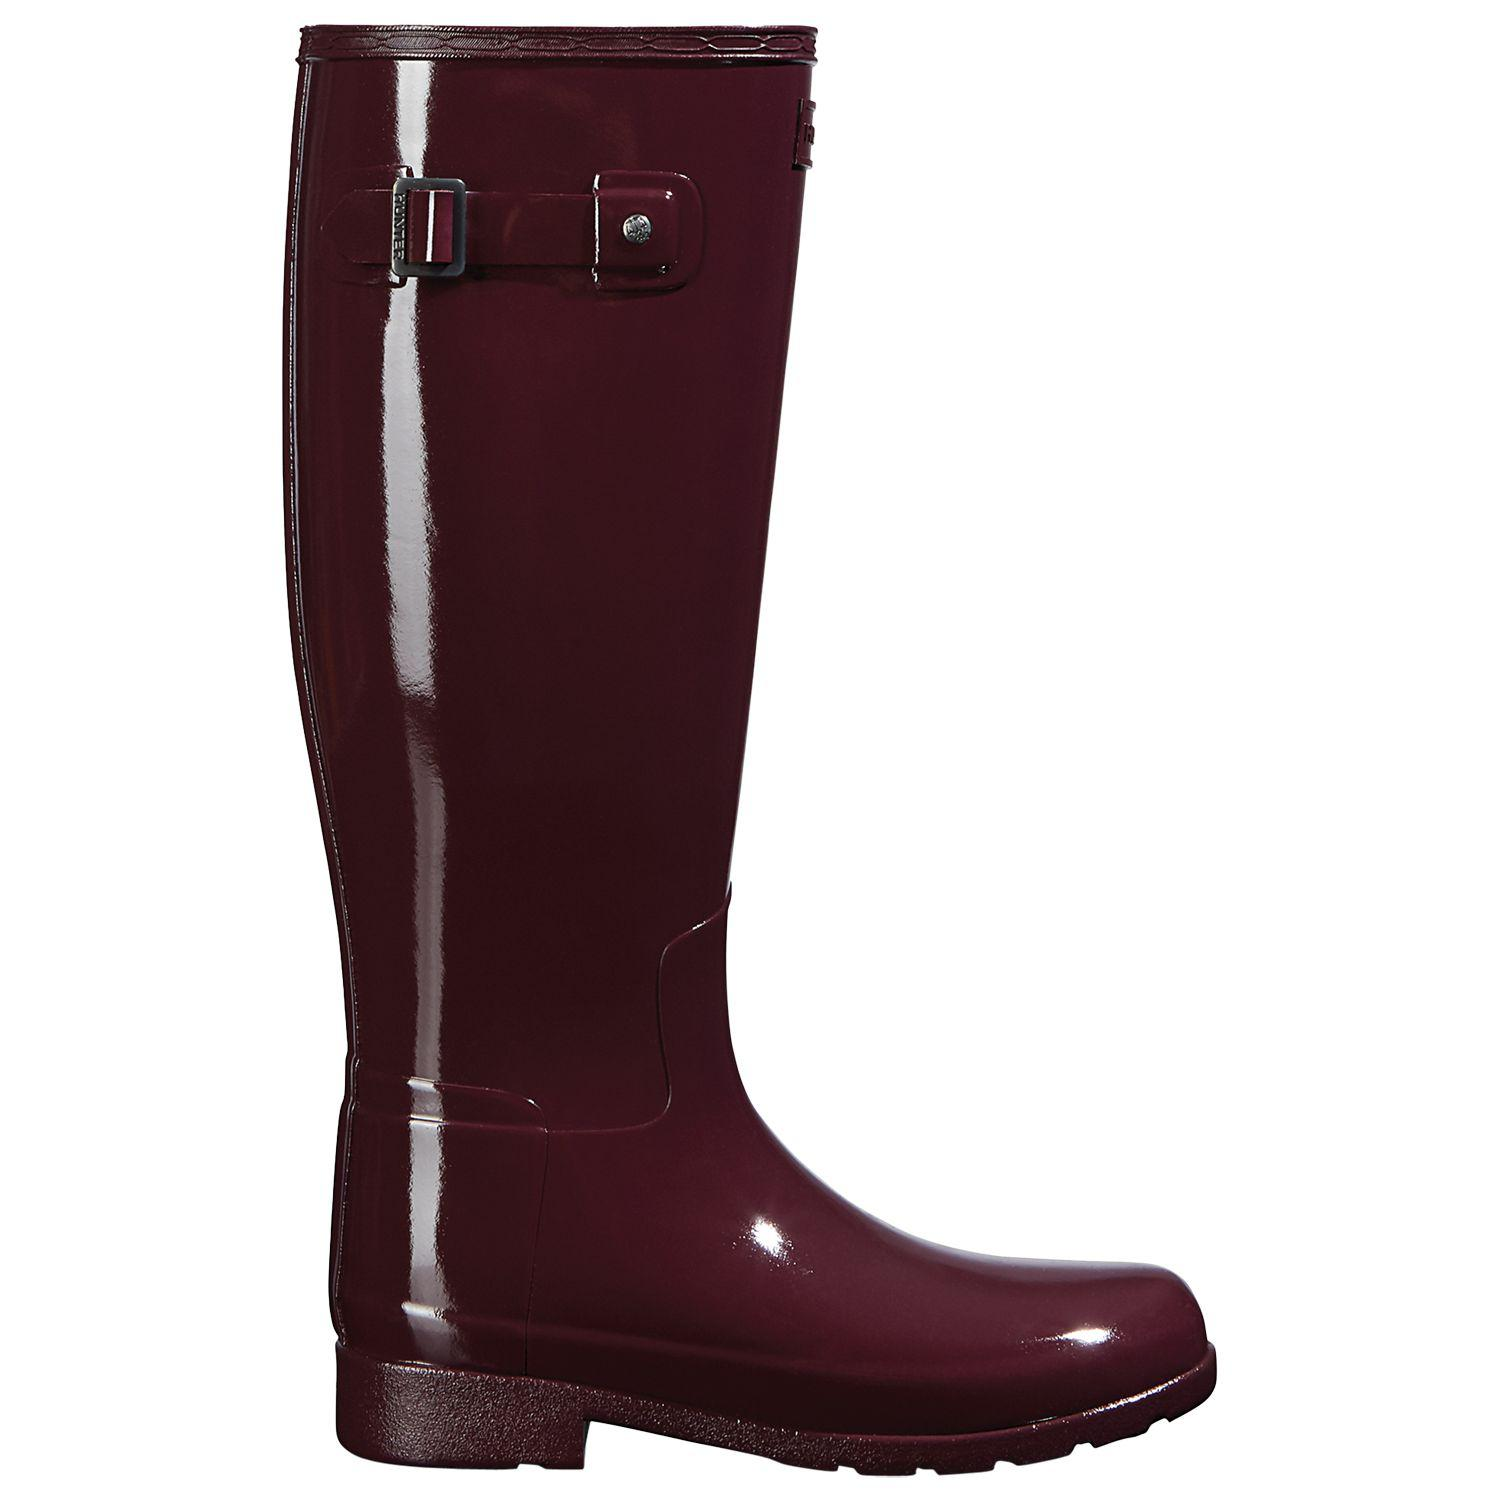 HUNTER Rubber Women's Original Refined Gloss Tall Boots in Oxblood (Red)